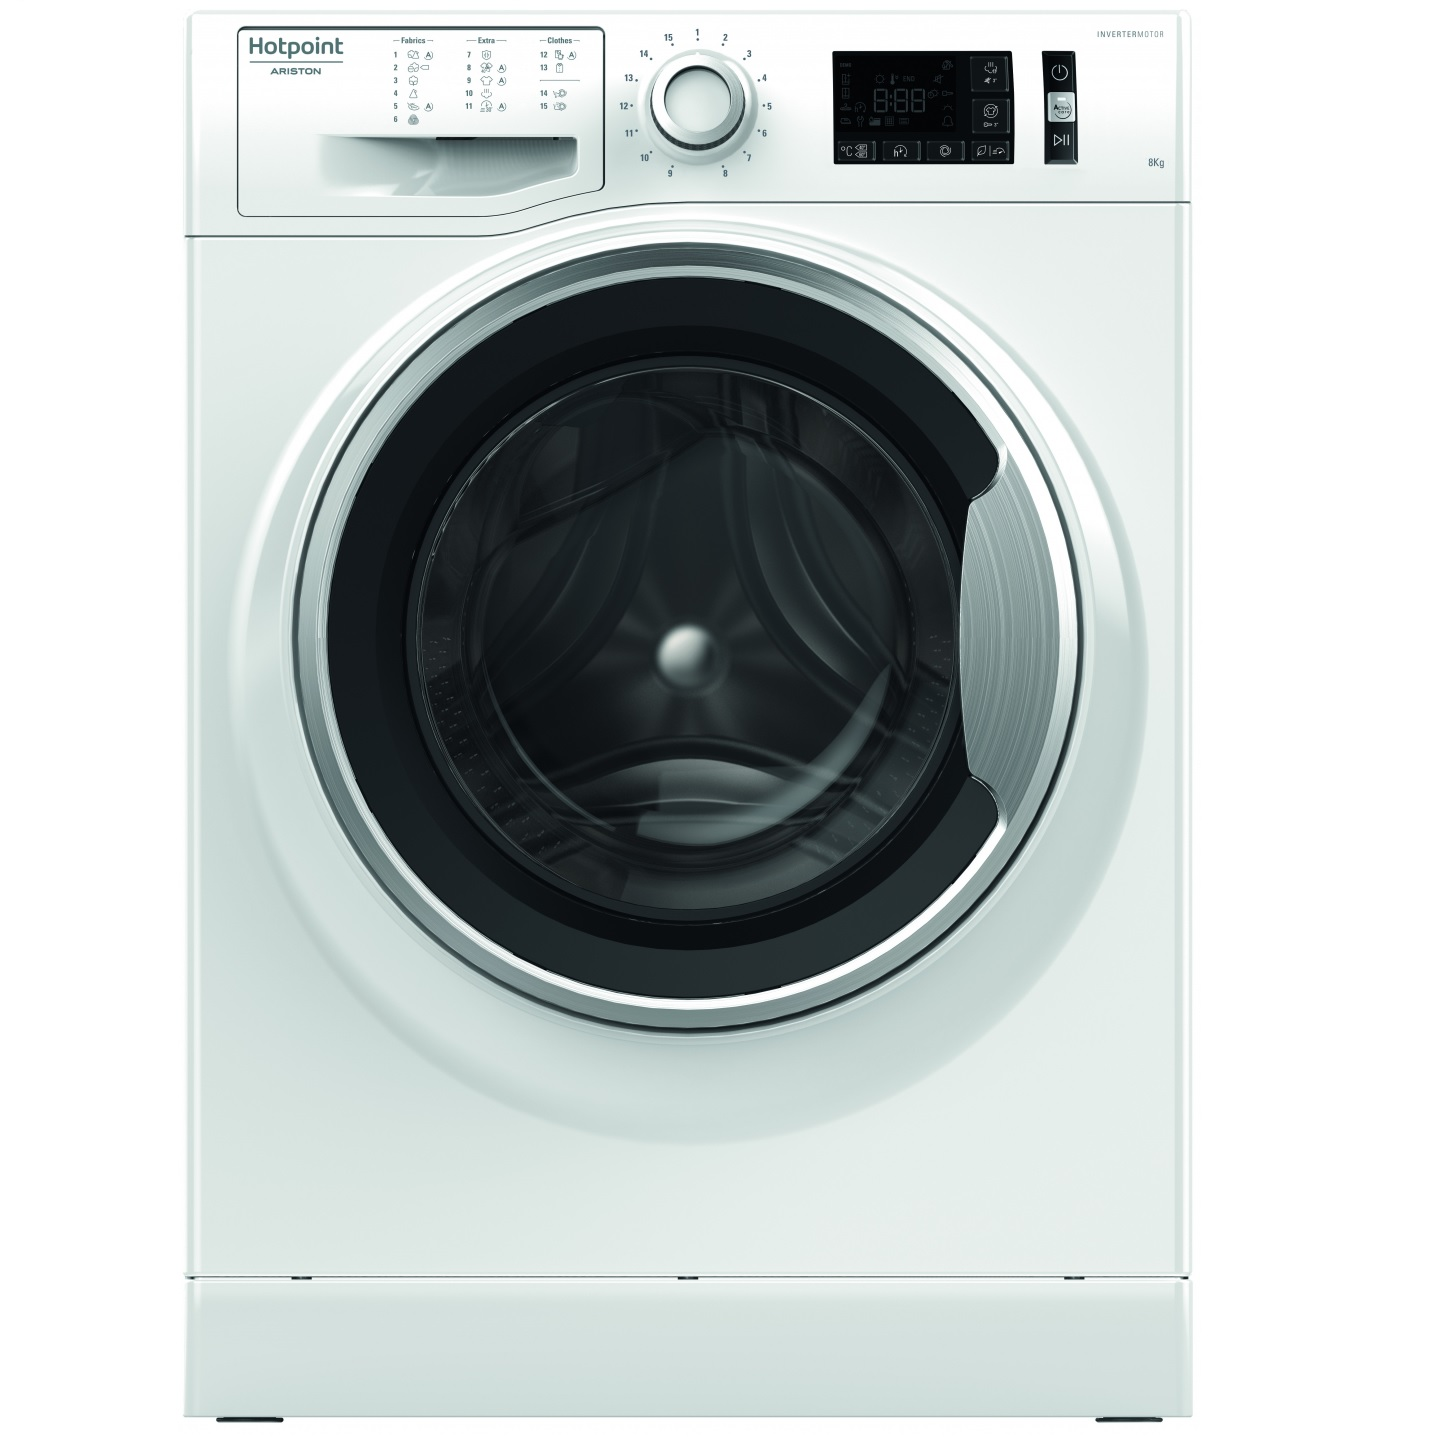 Hotpoint Ariston NM 11825 WSA EU, Перална машина 8 кг. А+++